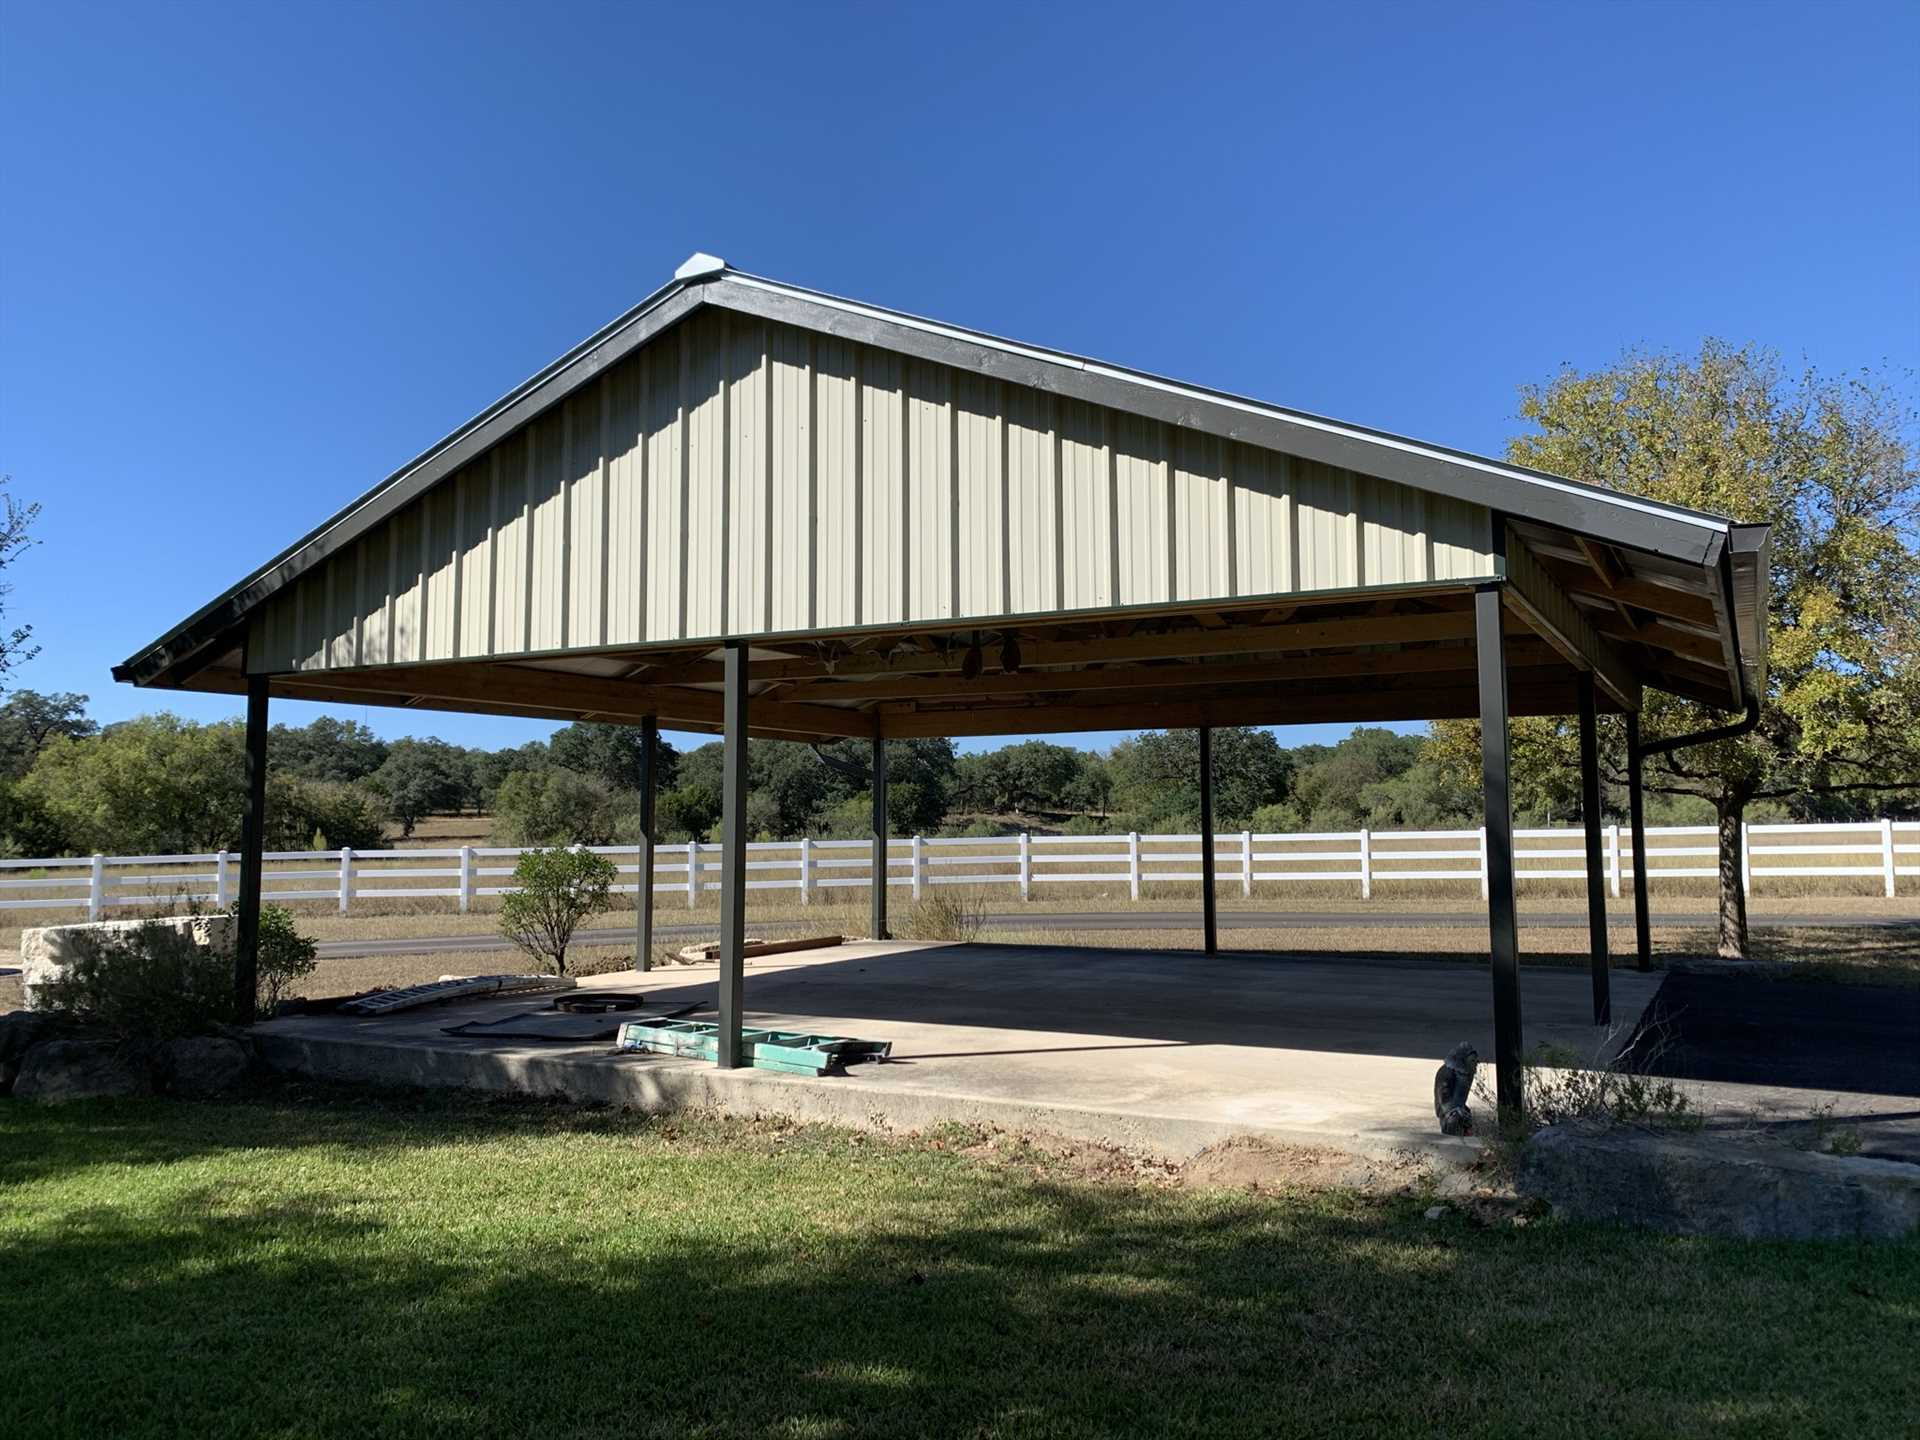 Even your vehicles will be pampered with the nearby shaded carport.